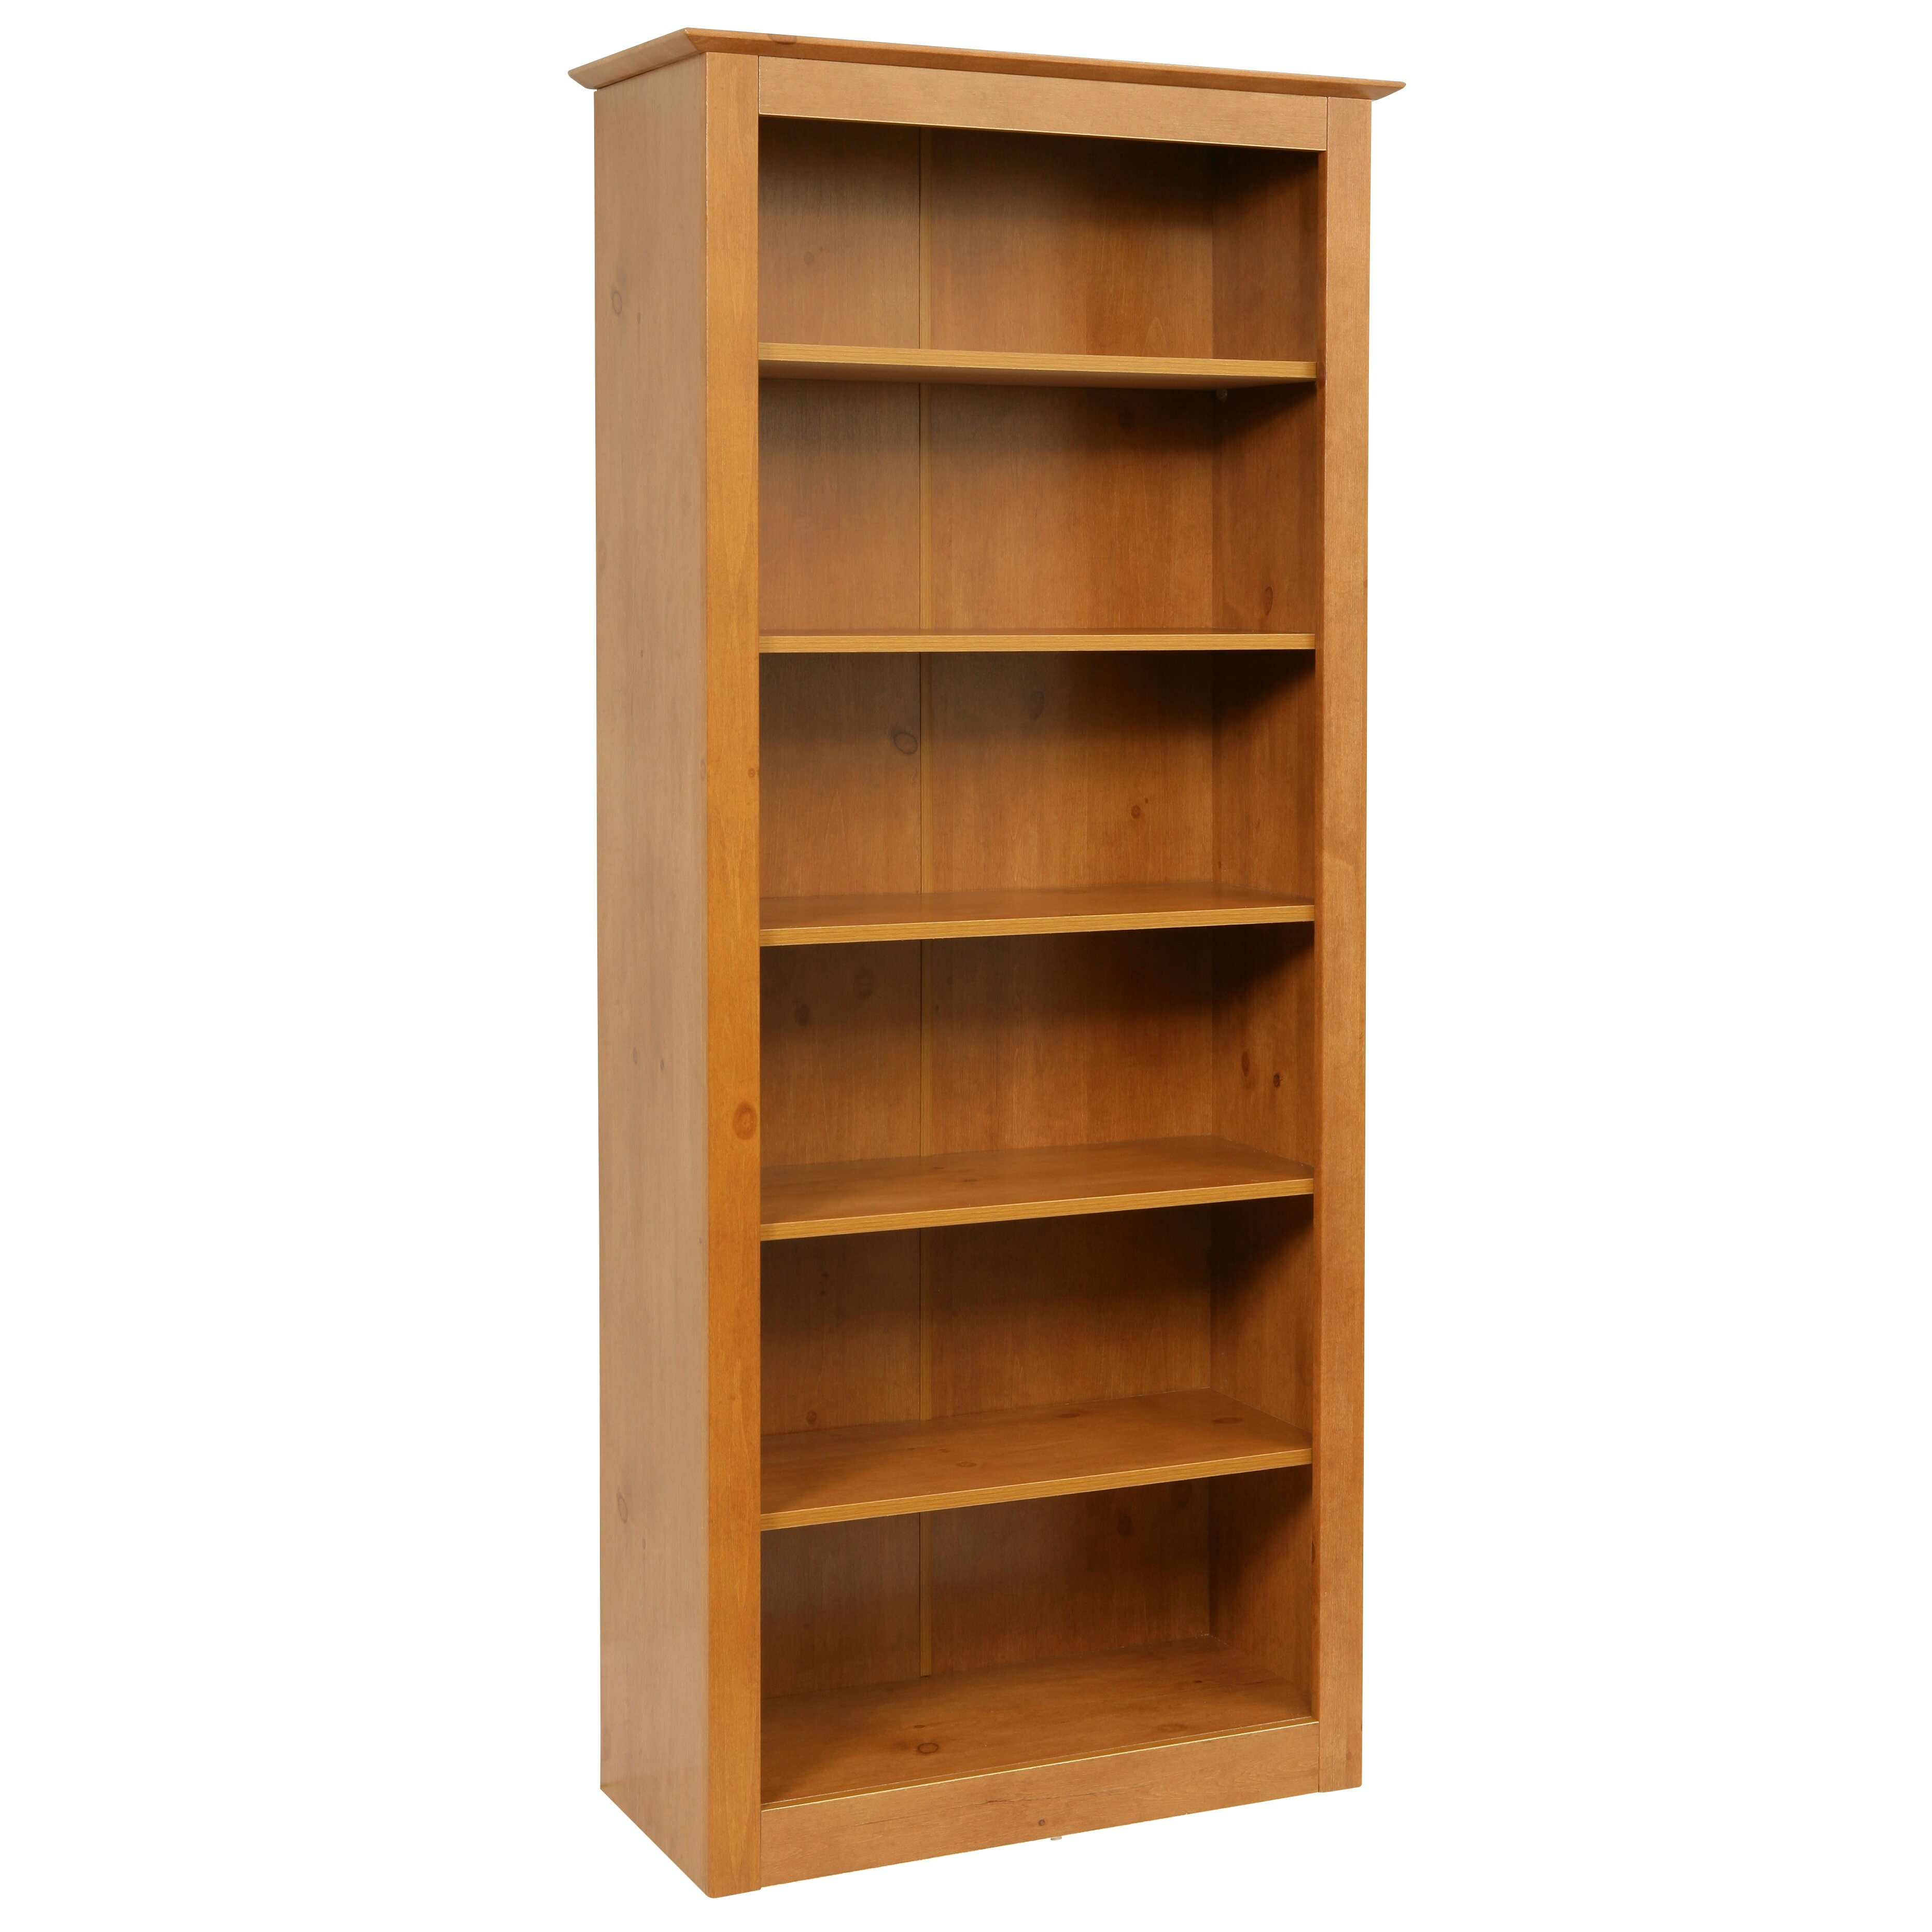 brand new 23 inch wide bookcase with interesting examples